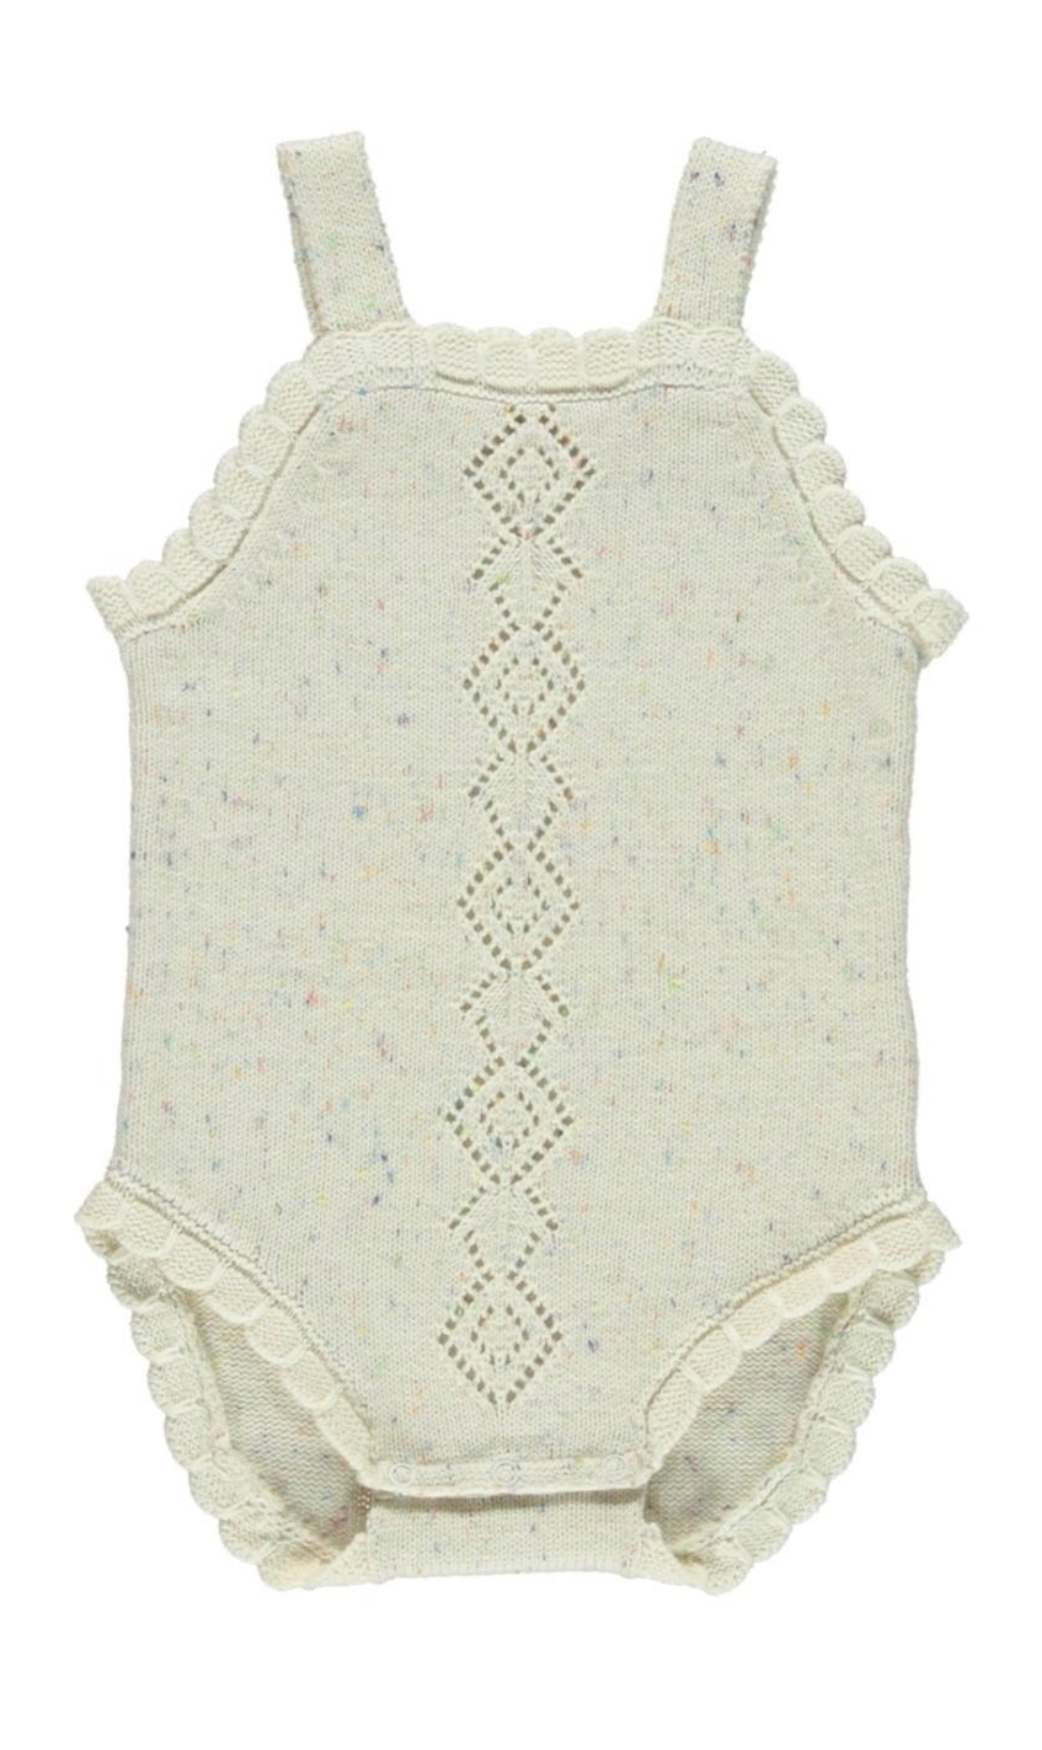 Fin and Vince - Scallop Onesie (Confetti)